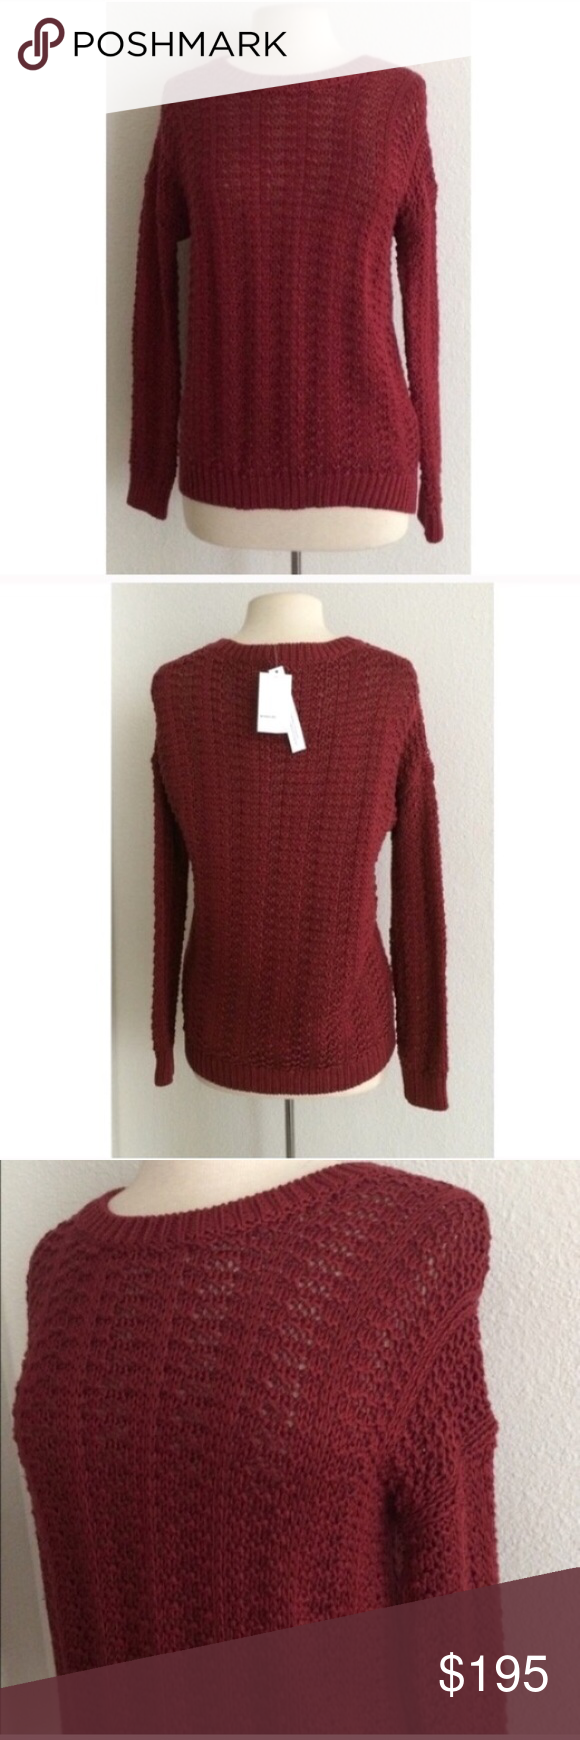 "Vince chunky knit sweater Vince chunky knit sweater. Size XS . Measures 26"" long with a 38"" bust. 100% cotton. This is an open knit sweater so it is see through. Semi oversized and extremely comfy!                                         🚫NO TRADES🚫 💲Reasonable offers accepted💲 💰Ask about bundle discounts💰 Vince Sweaters Crew & Scoop Necks"